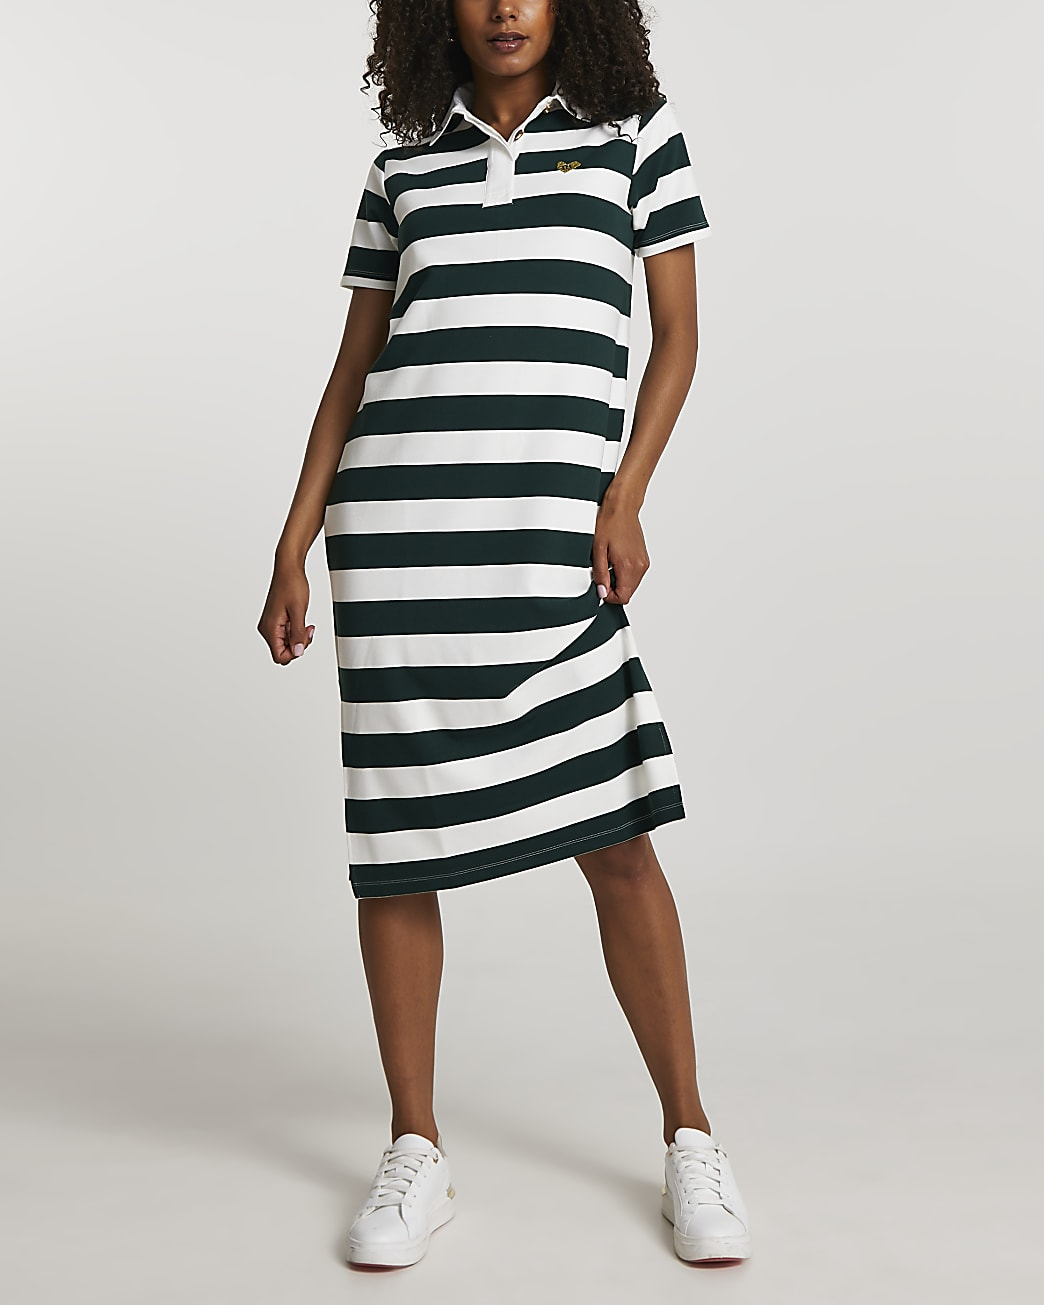 Green rugby style polo midi dress